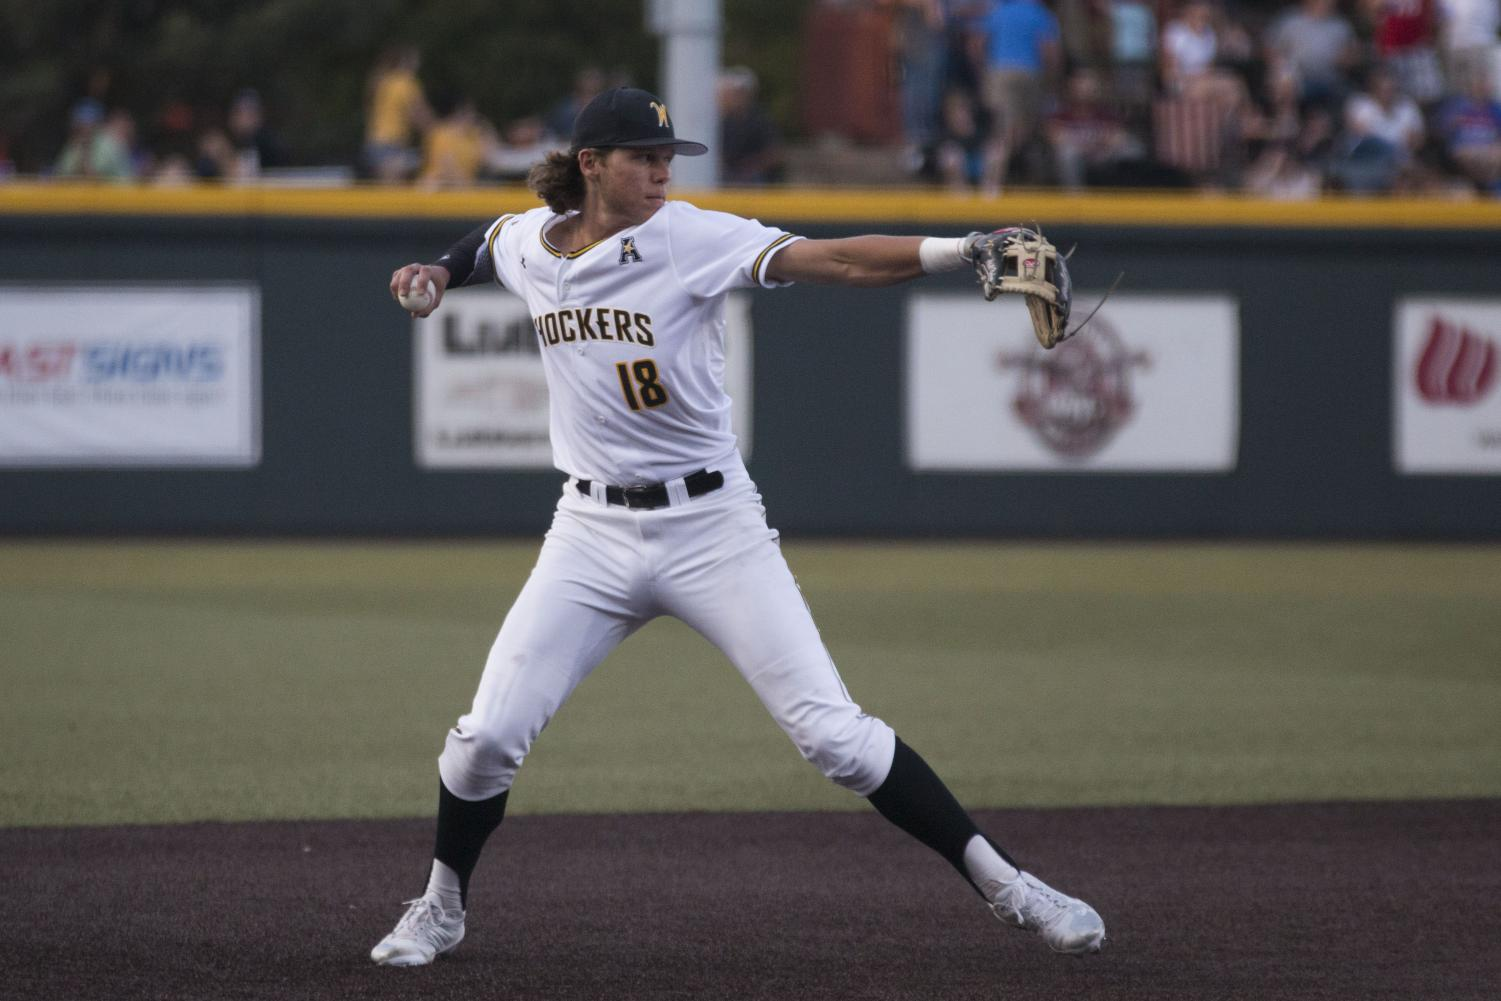 Wichita State junior Alec Bohm throws to first for an out against USF Friday evening at Eck Stadium.